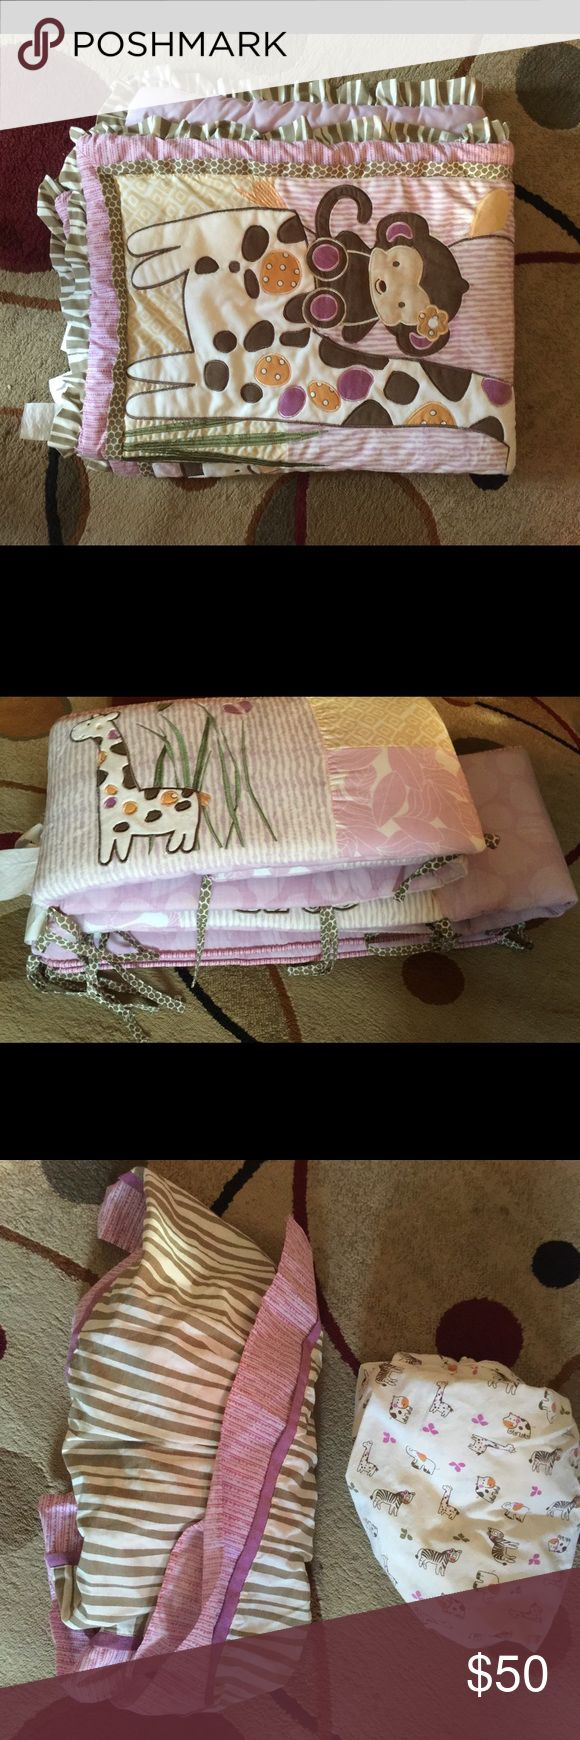 Baby crib set Selling baby crib set, used GREAT condition.  Cocalo Jacana bedding set.  -Quilt -dust ruffle -diaper stacker -fitted crib sheet -one wall hanger -bumper Other